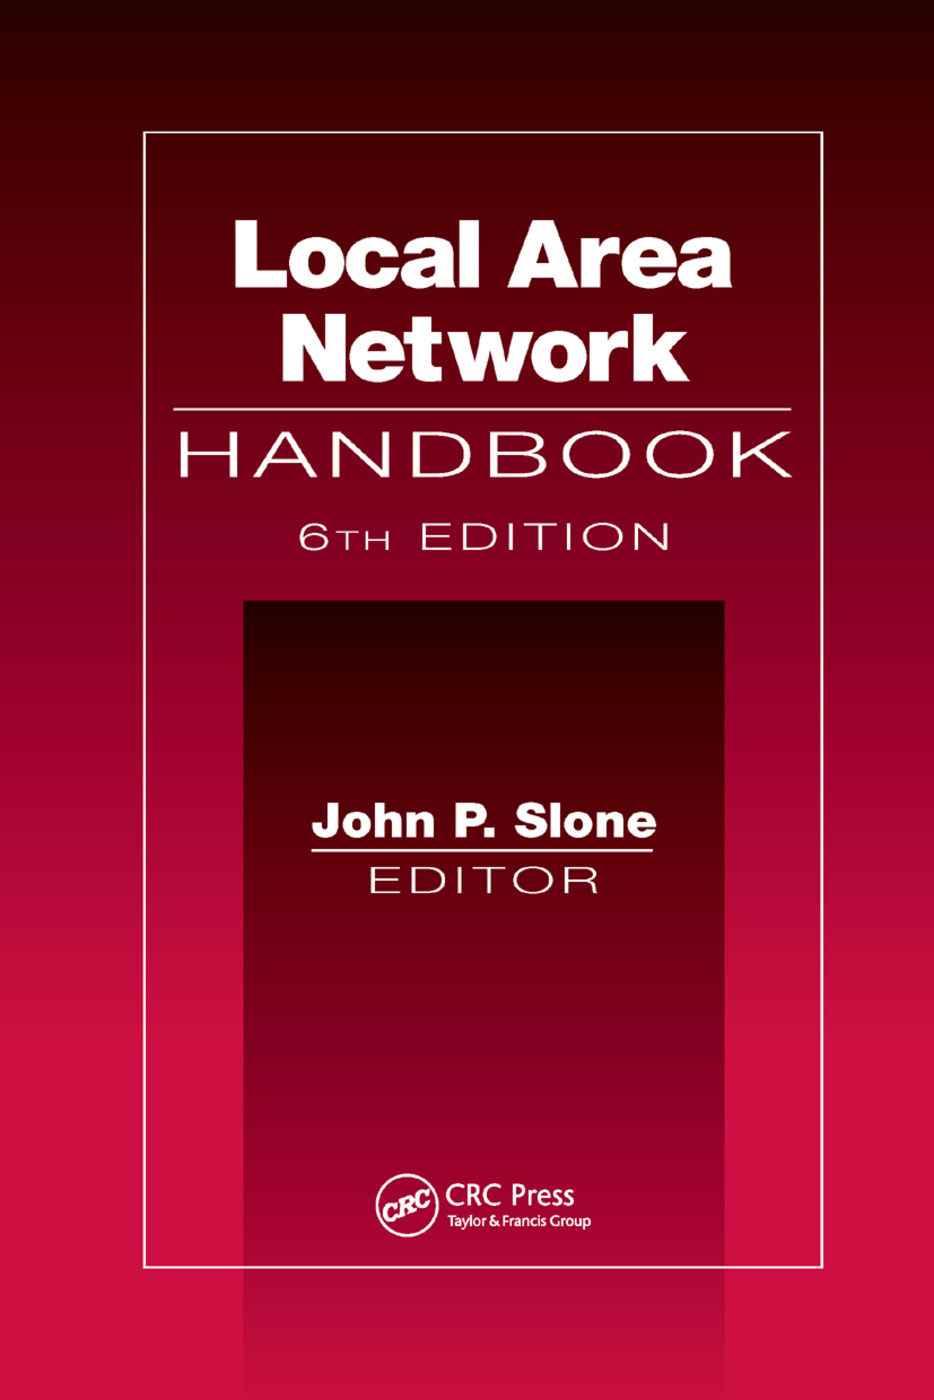 Local Area Network Handbook, Sixth Edition: 6th Edition (Paperback) book cover